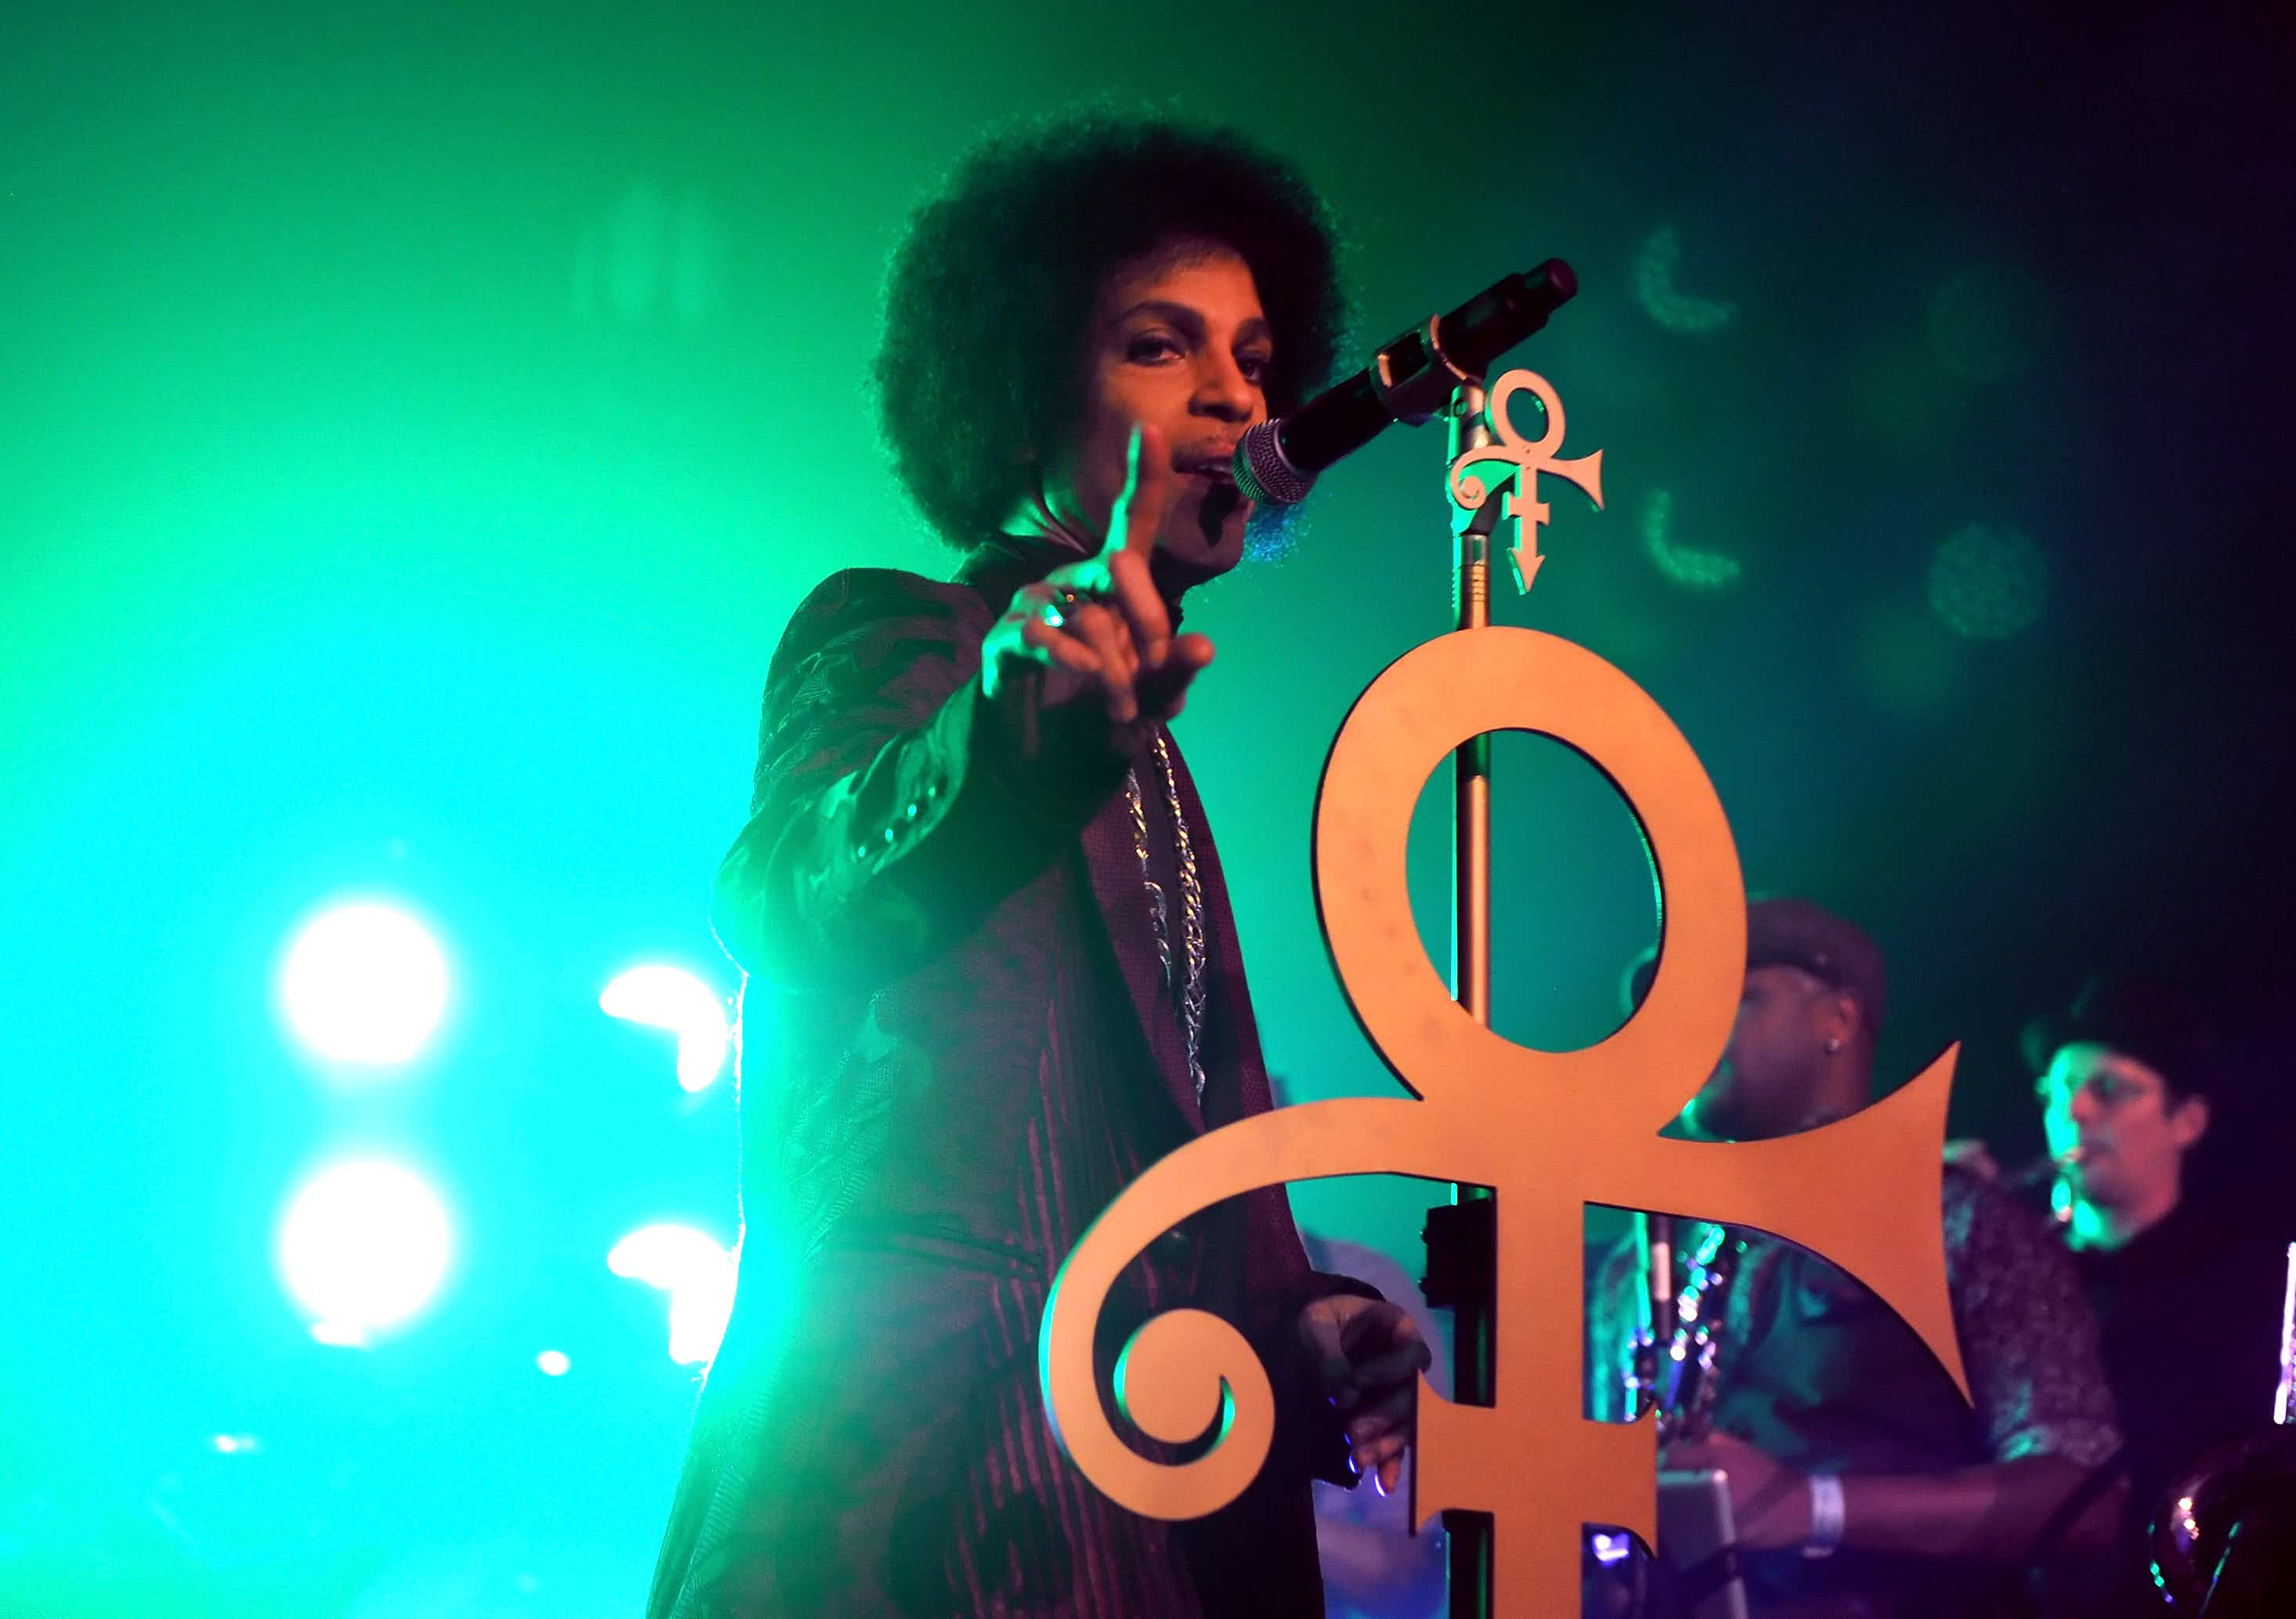 A new Prince exhibition in London will premiere items from the music legend's Paisley Park